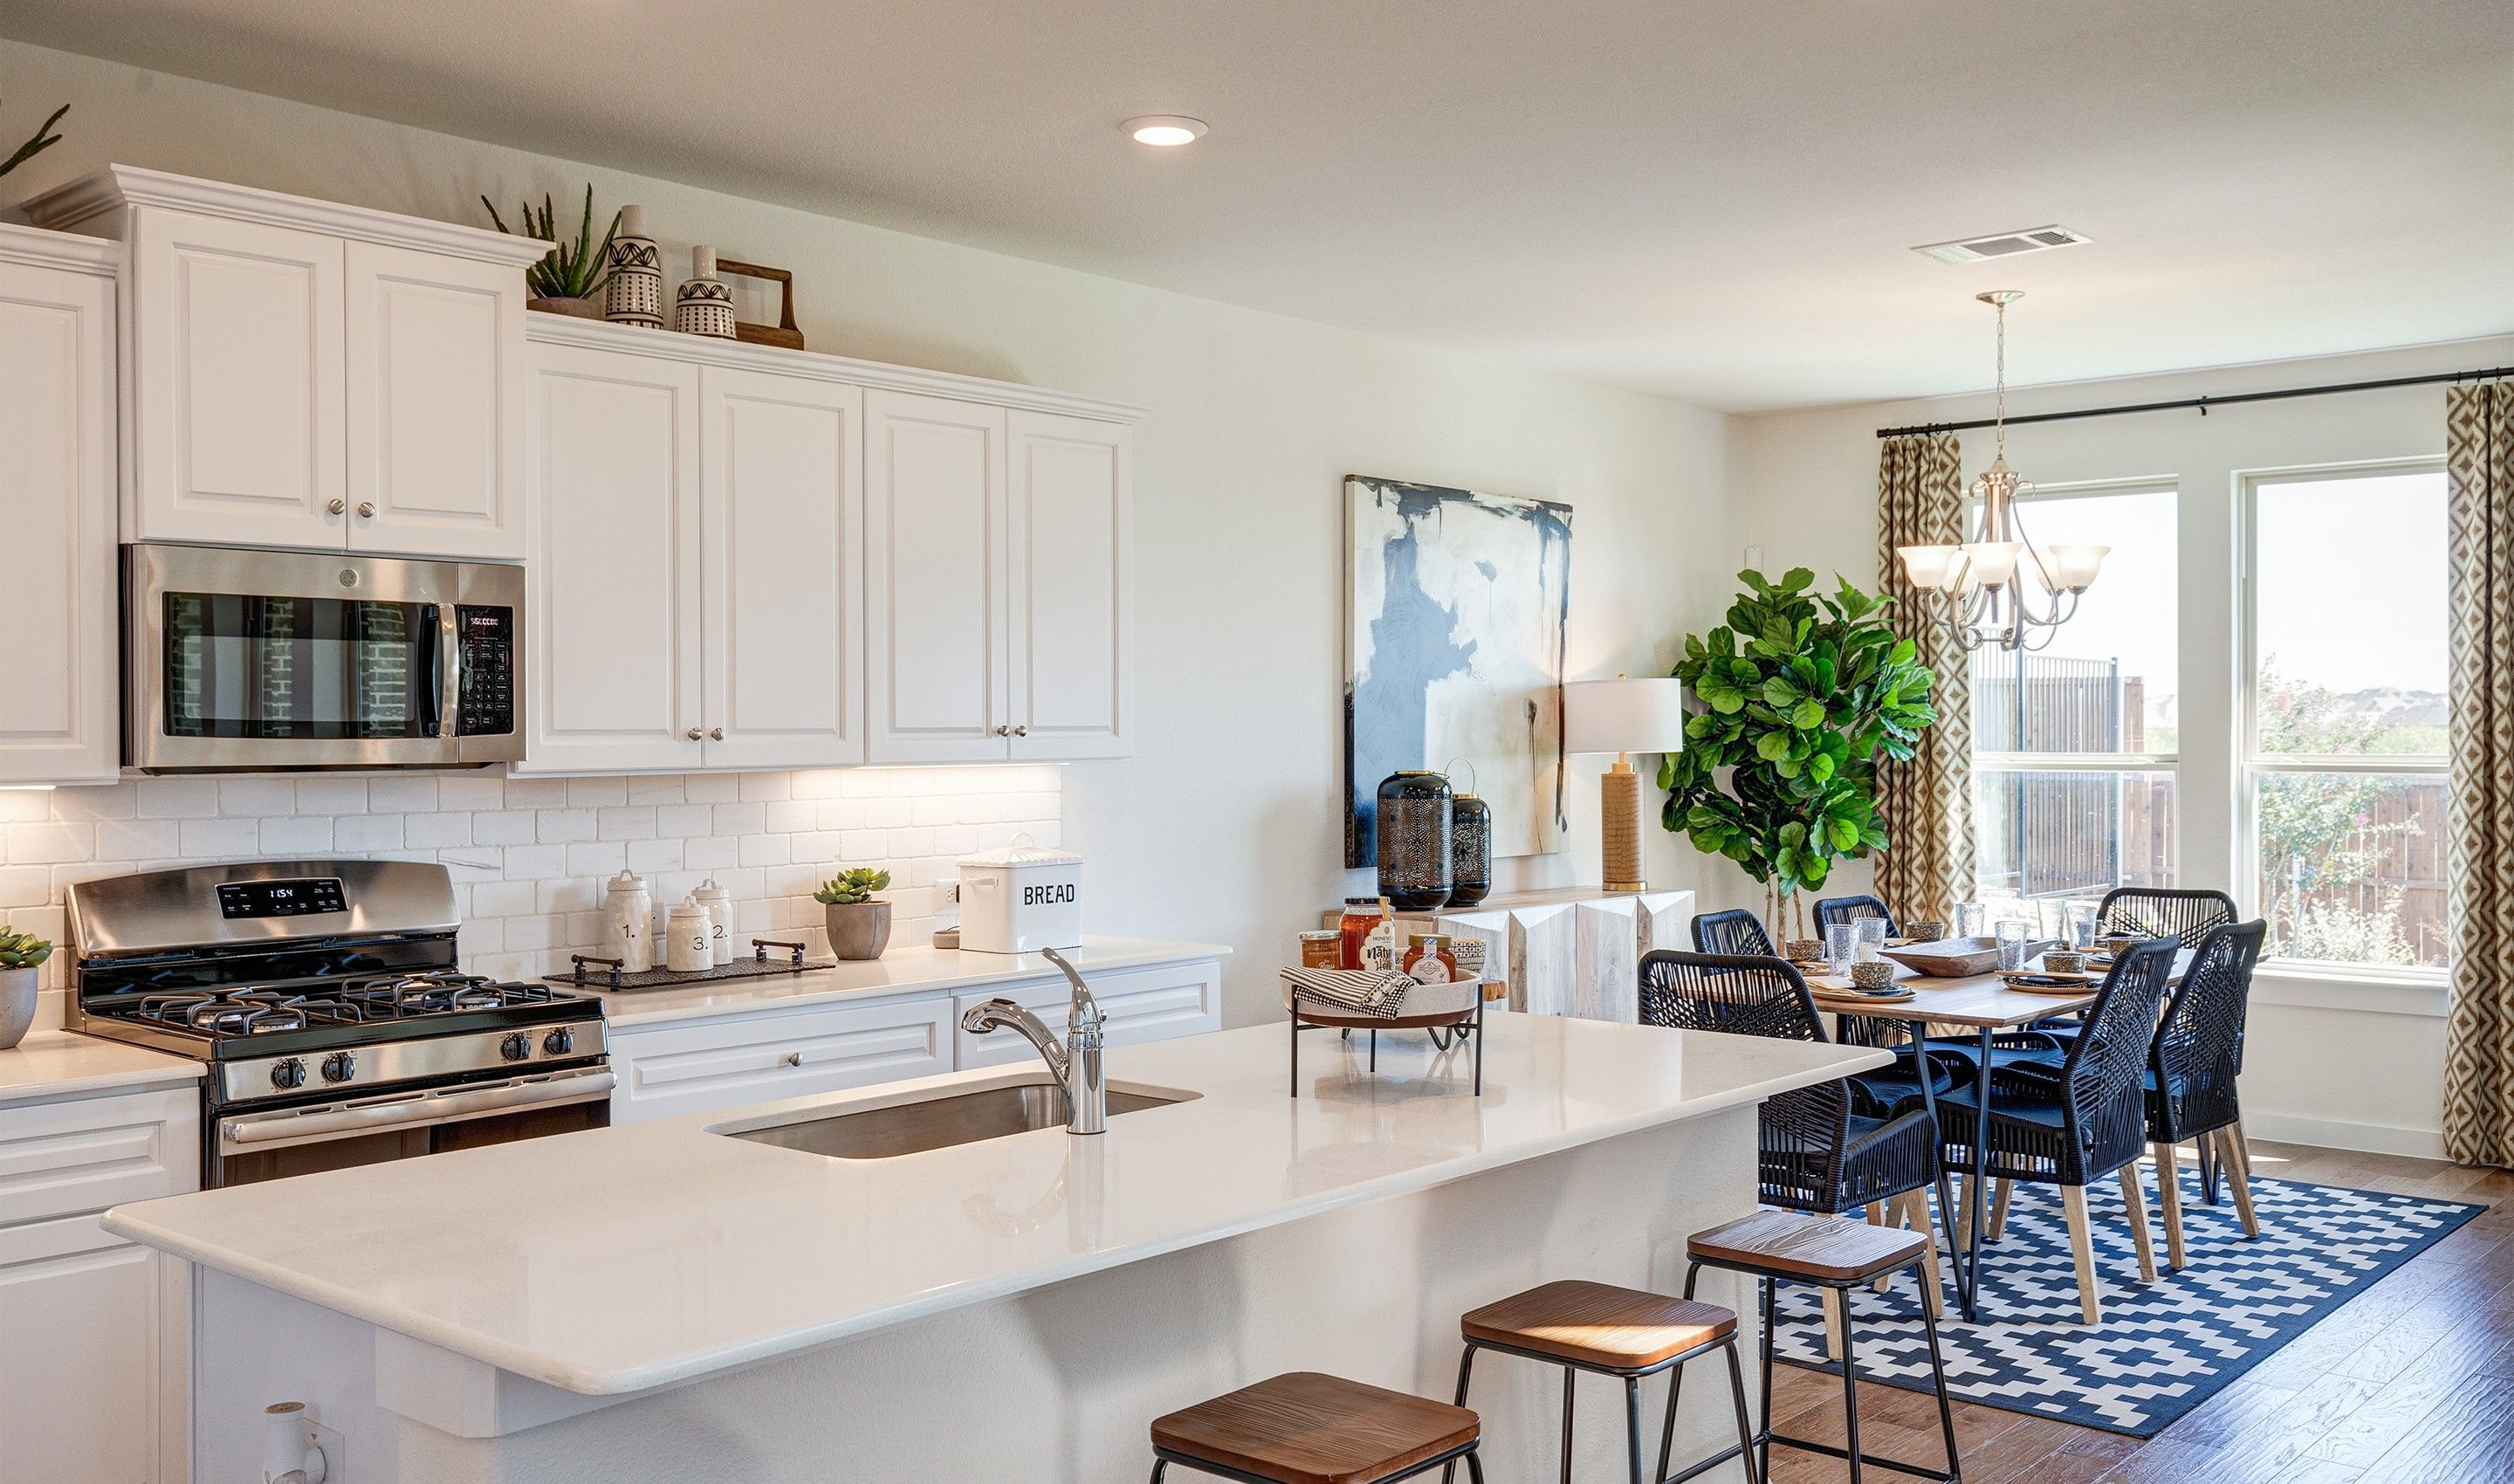 Kitchen featured in the Brookstone IV By K. Hovnanian® Homes in Dallas, TX